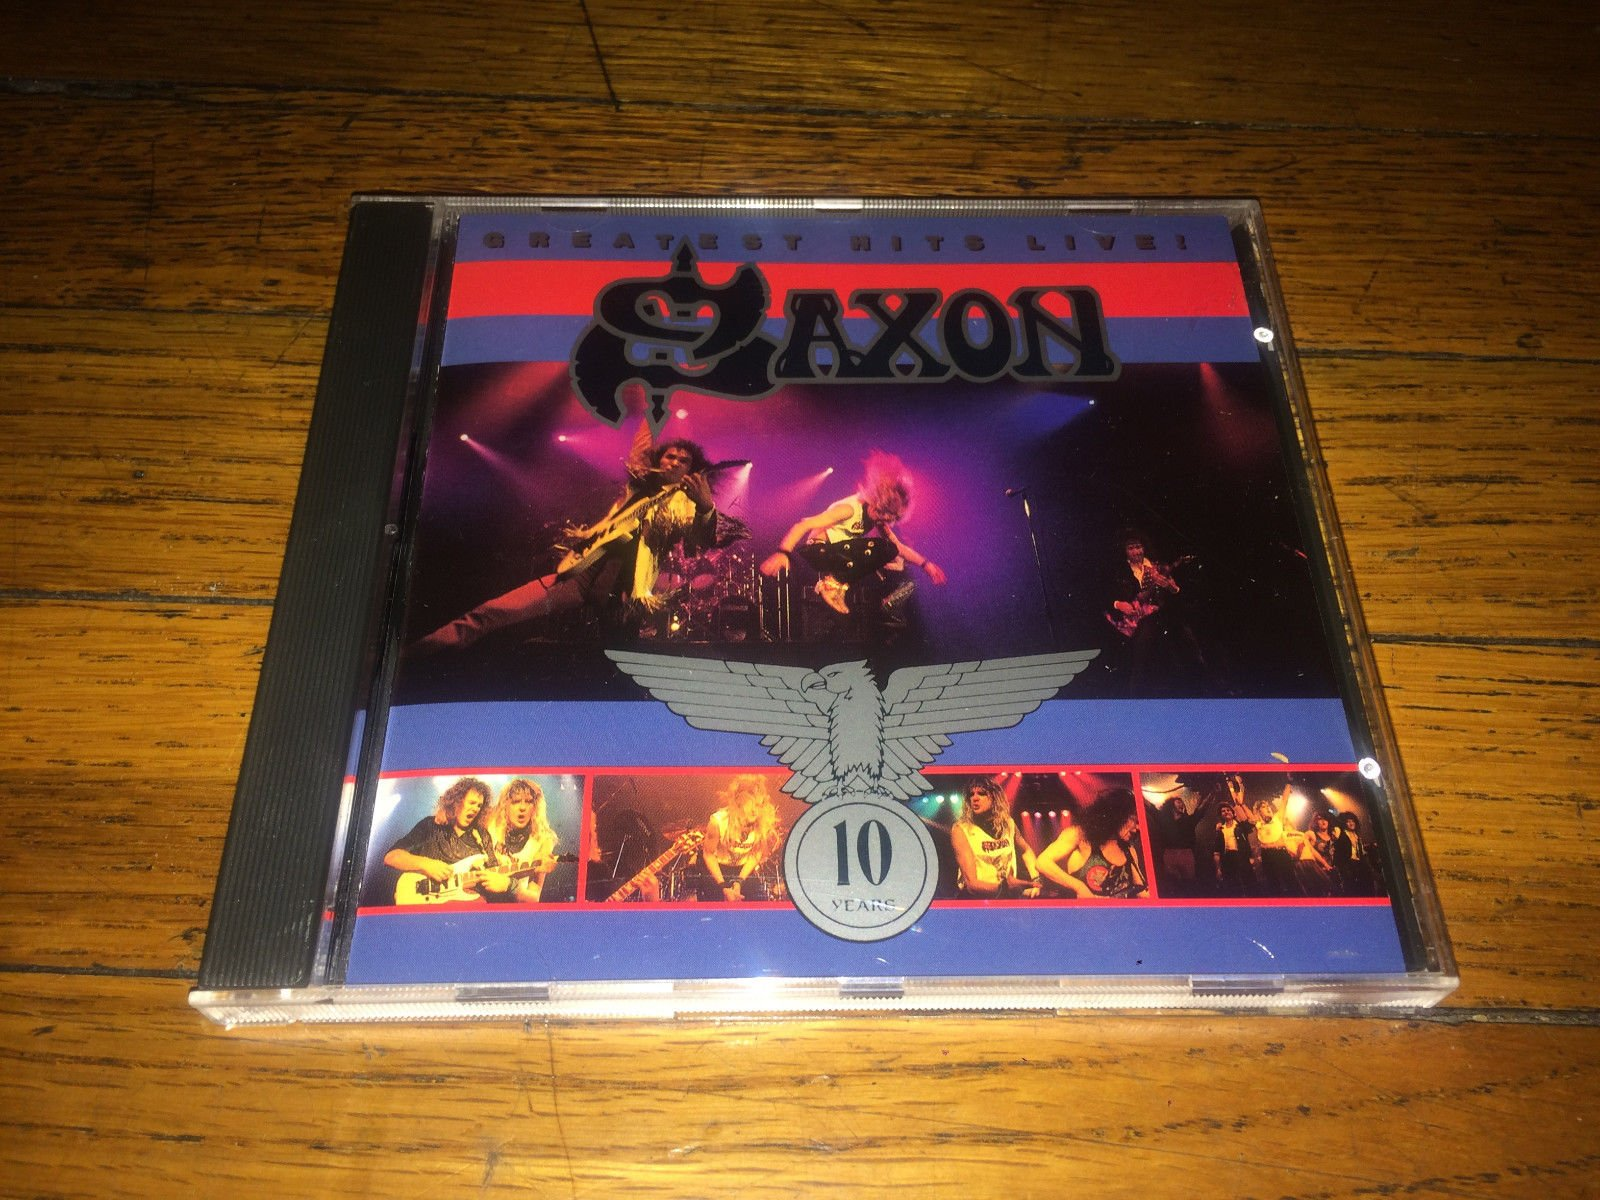 Saxon - Greatest Hits: Live! by Red Distribution, in